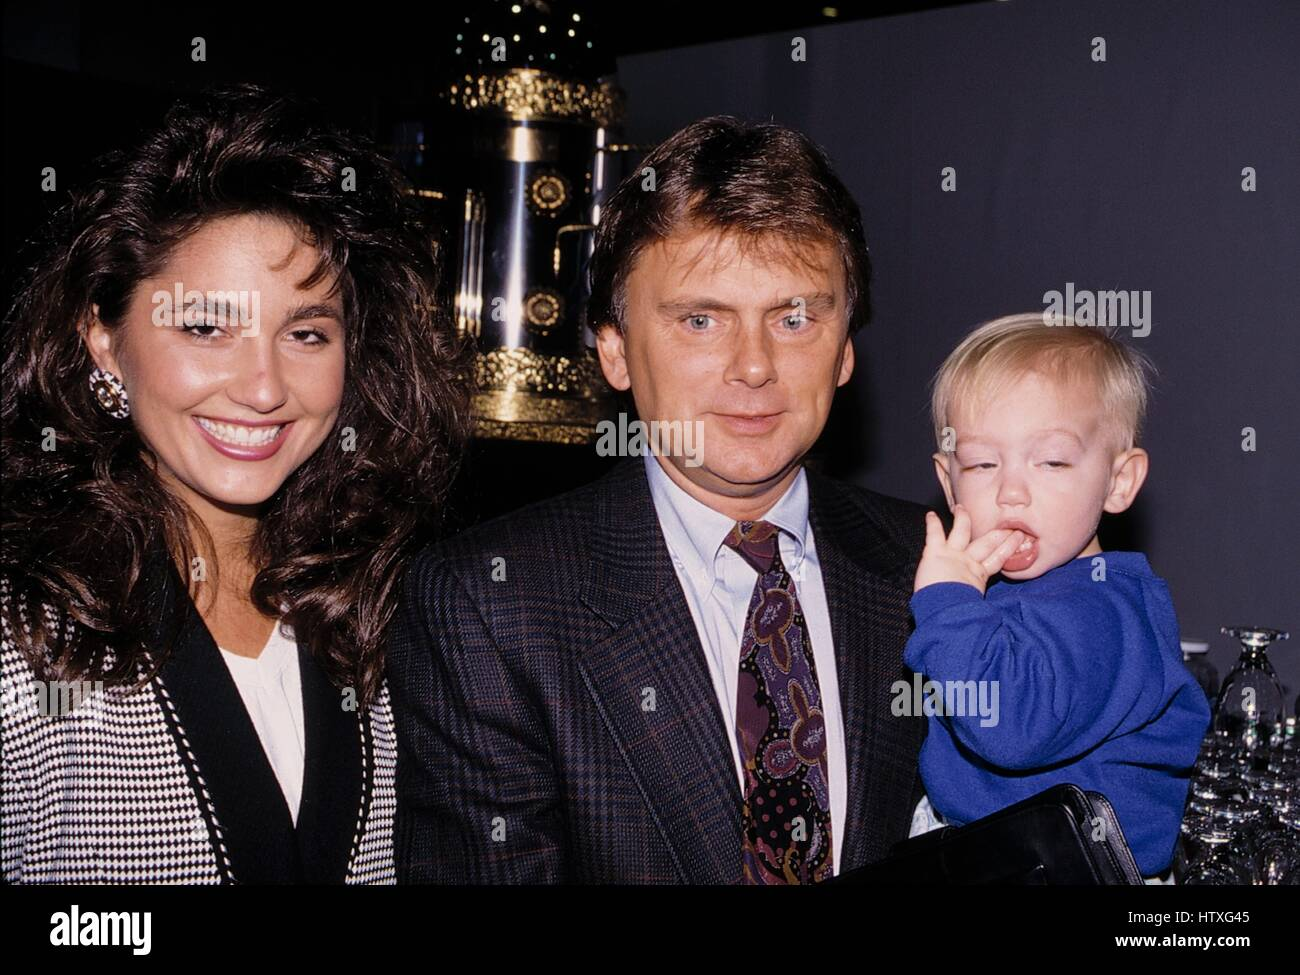 Pat Sajak with wife Lesley and son Attending The N.A.T.P.E ...